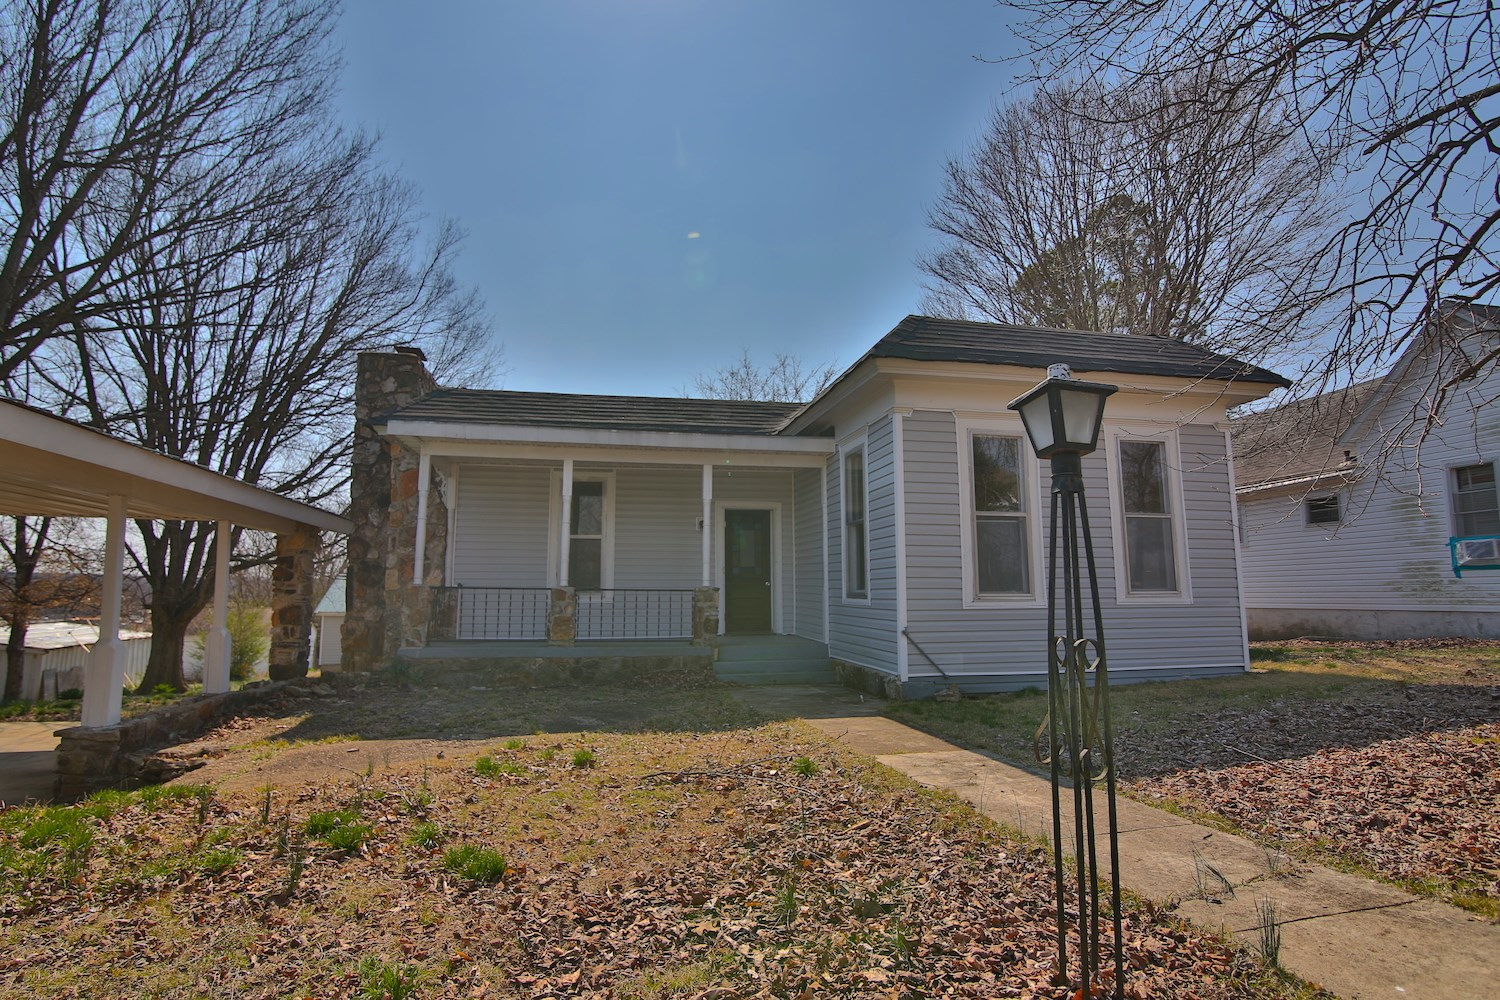 Home for Sale in Thayer Missouri